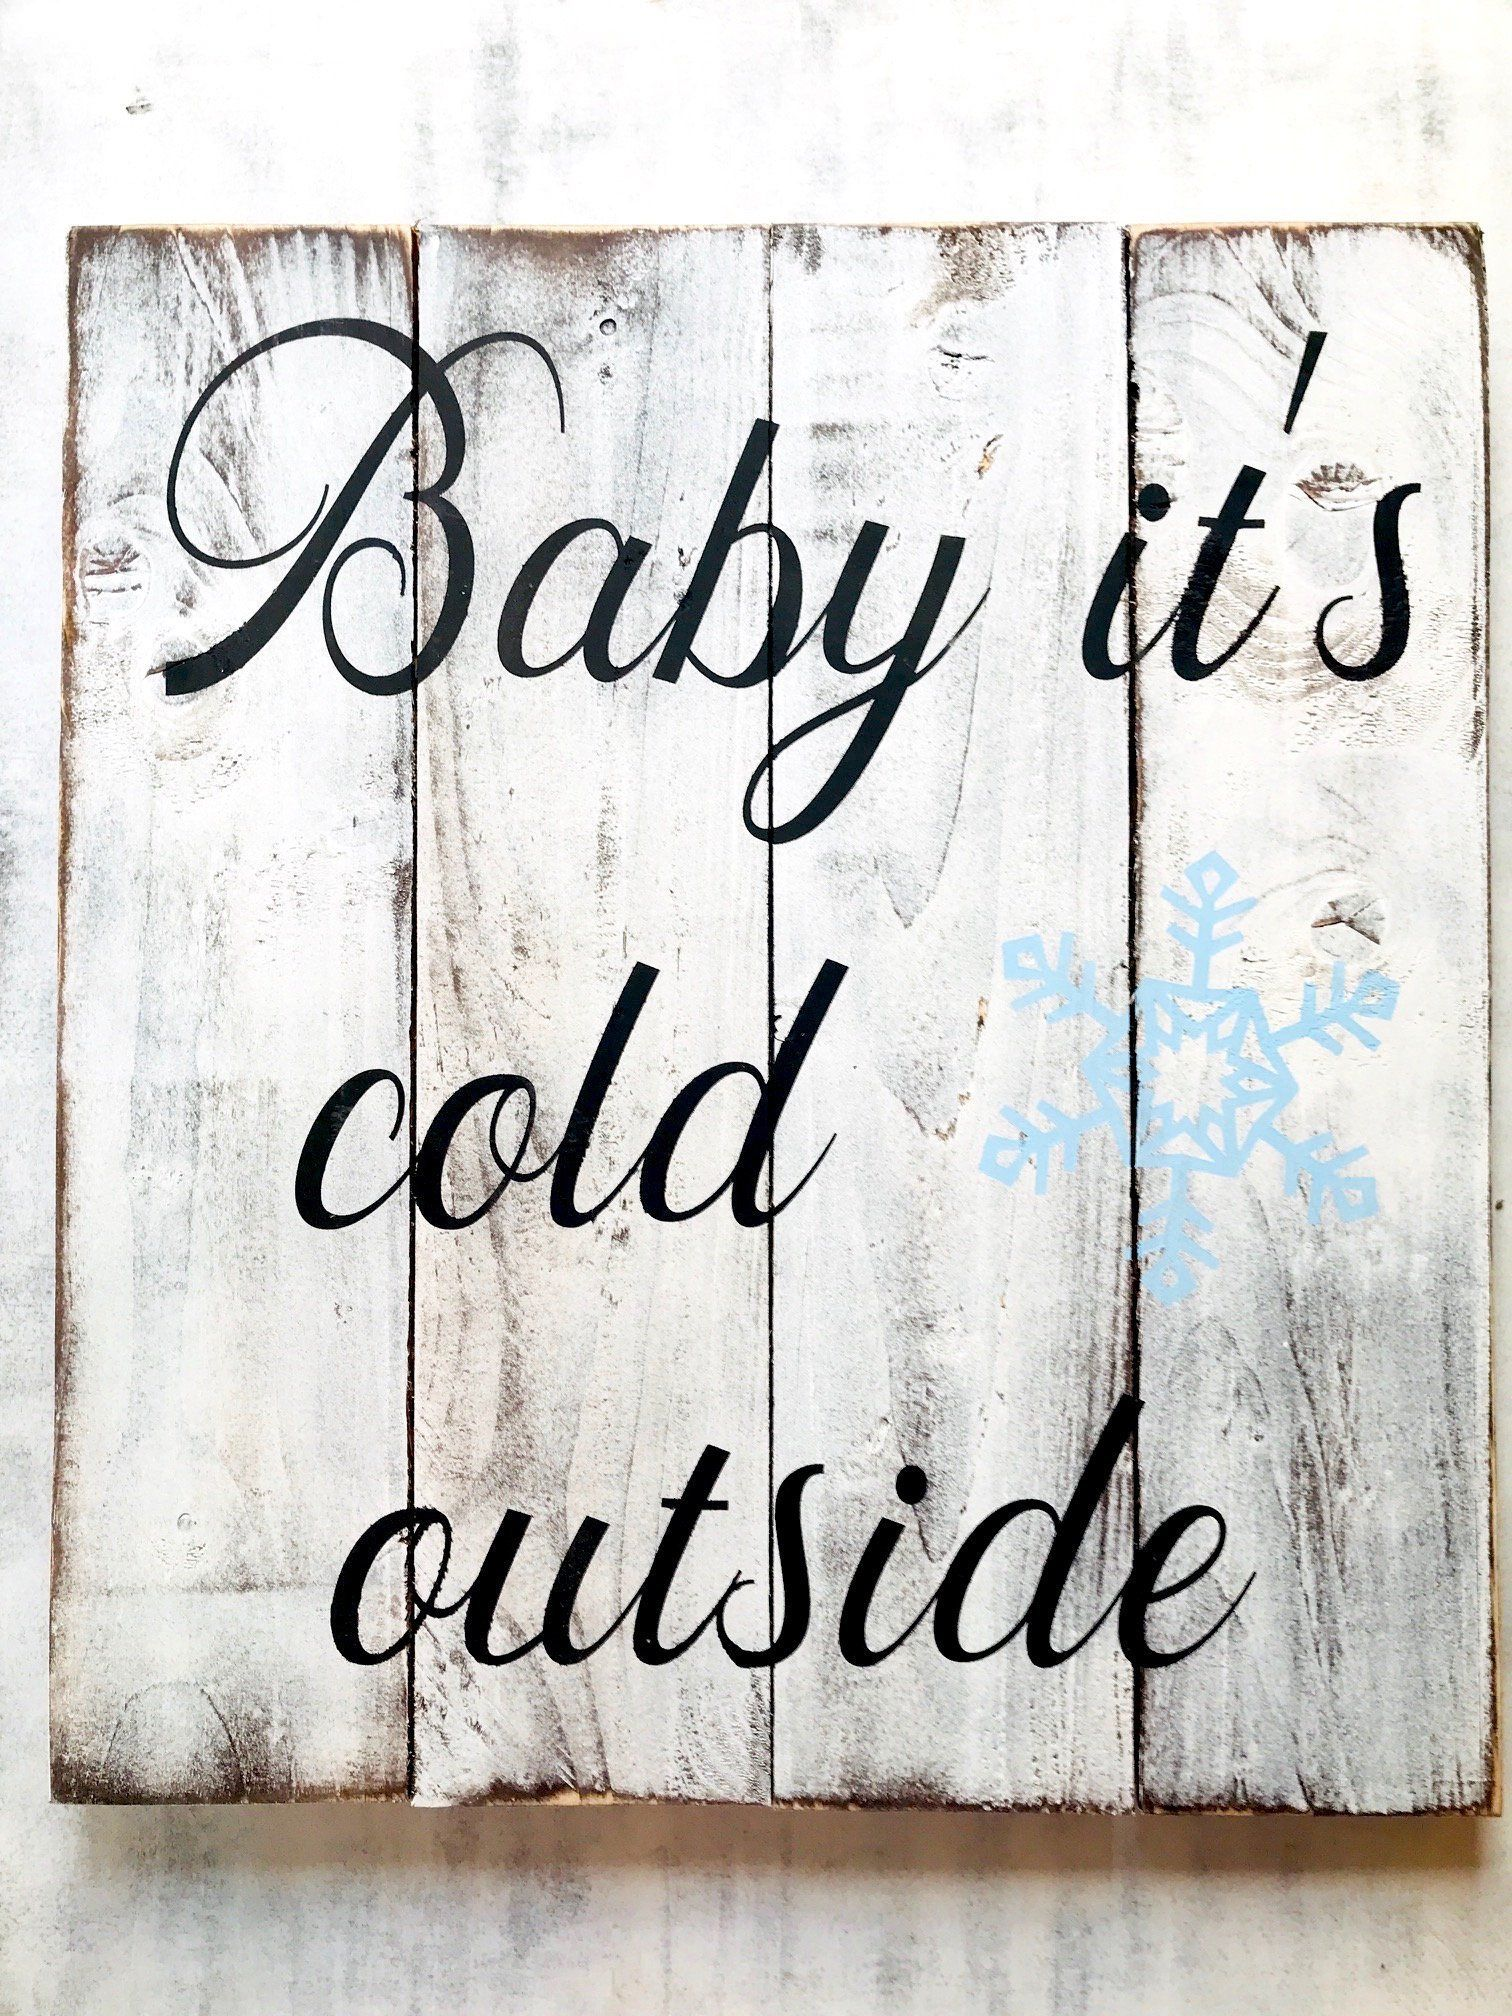 Farmhouse Christmas Decor Wood Sign  Baby it's Cold Outside is part of Winter decor Signs - 2 inch  Please note Wood will vary in size, color and will have imperfections  lots of CHARACTER! The wood sign may also have knots, holes where knots have fallen out, different grains which can cause the color to very slightly all giving it a great personal and unique rustic touch! SHIPPING for Wood Signs We use USPS 23 day priority shipping for most of my signs  We normally ship all orders on FRIDAY'S unless you have purchased the RUSH OPTION  Thank you for your understanding  We love making our rustic home decor signs! We want you to be happy and to order again in the future for your next big event, birthday, or holiday  Our wood signs make the PERFECT gift for all your family and friends  Our goal is to gain friends instead of followers and would love for you to join me on this journey by visiting us on our social media platforms, which are linked at the bottom    ATTENTION Please look over the shipping policies and time frame for your wood sign to be shipped BEFORE ordering  Each wood sign is custom built and hand painted when ordered and is completed in the order that we receive them  We understand you may need lastminute gifts or home decor items so if you require your order to ship within 3 days upon date of purchase you can RUSH your order  The RUSH option is an additional $30  Which can be purchased here  (please be aware this is not FASTER shipping, this purchase is to jump it up in line in front all my other orders and to ship from my location quicker, this is not for quicker shipping timeframe)  PLEASE take a moment to share with your family and friends! Hit the share it buttons below, Facebook, Pinterest, or Instagram one share or mention or share will go a long way, thank you!! Red Roan Signs Copyright @ Red Roan Signs 2014  Rustic Farmhouse Custom Wood Signs